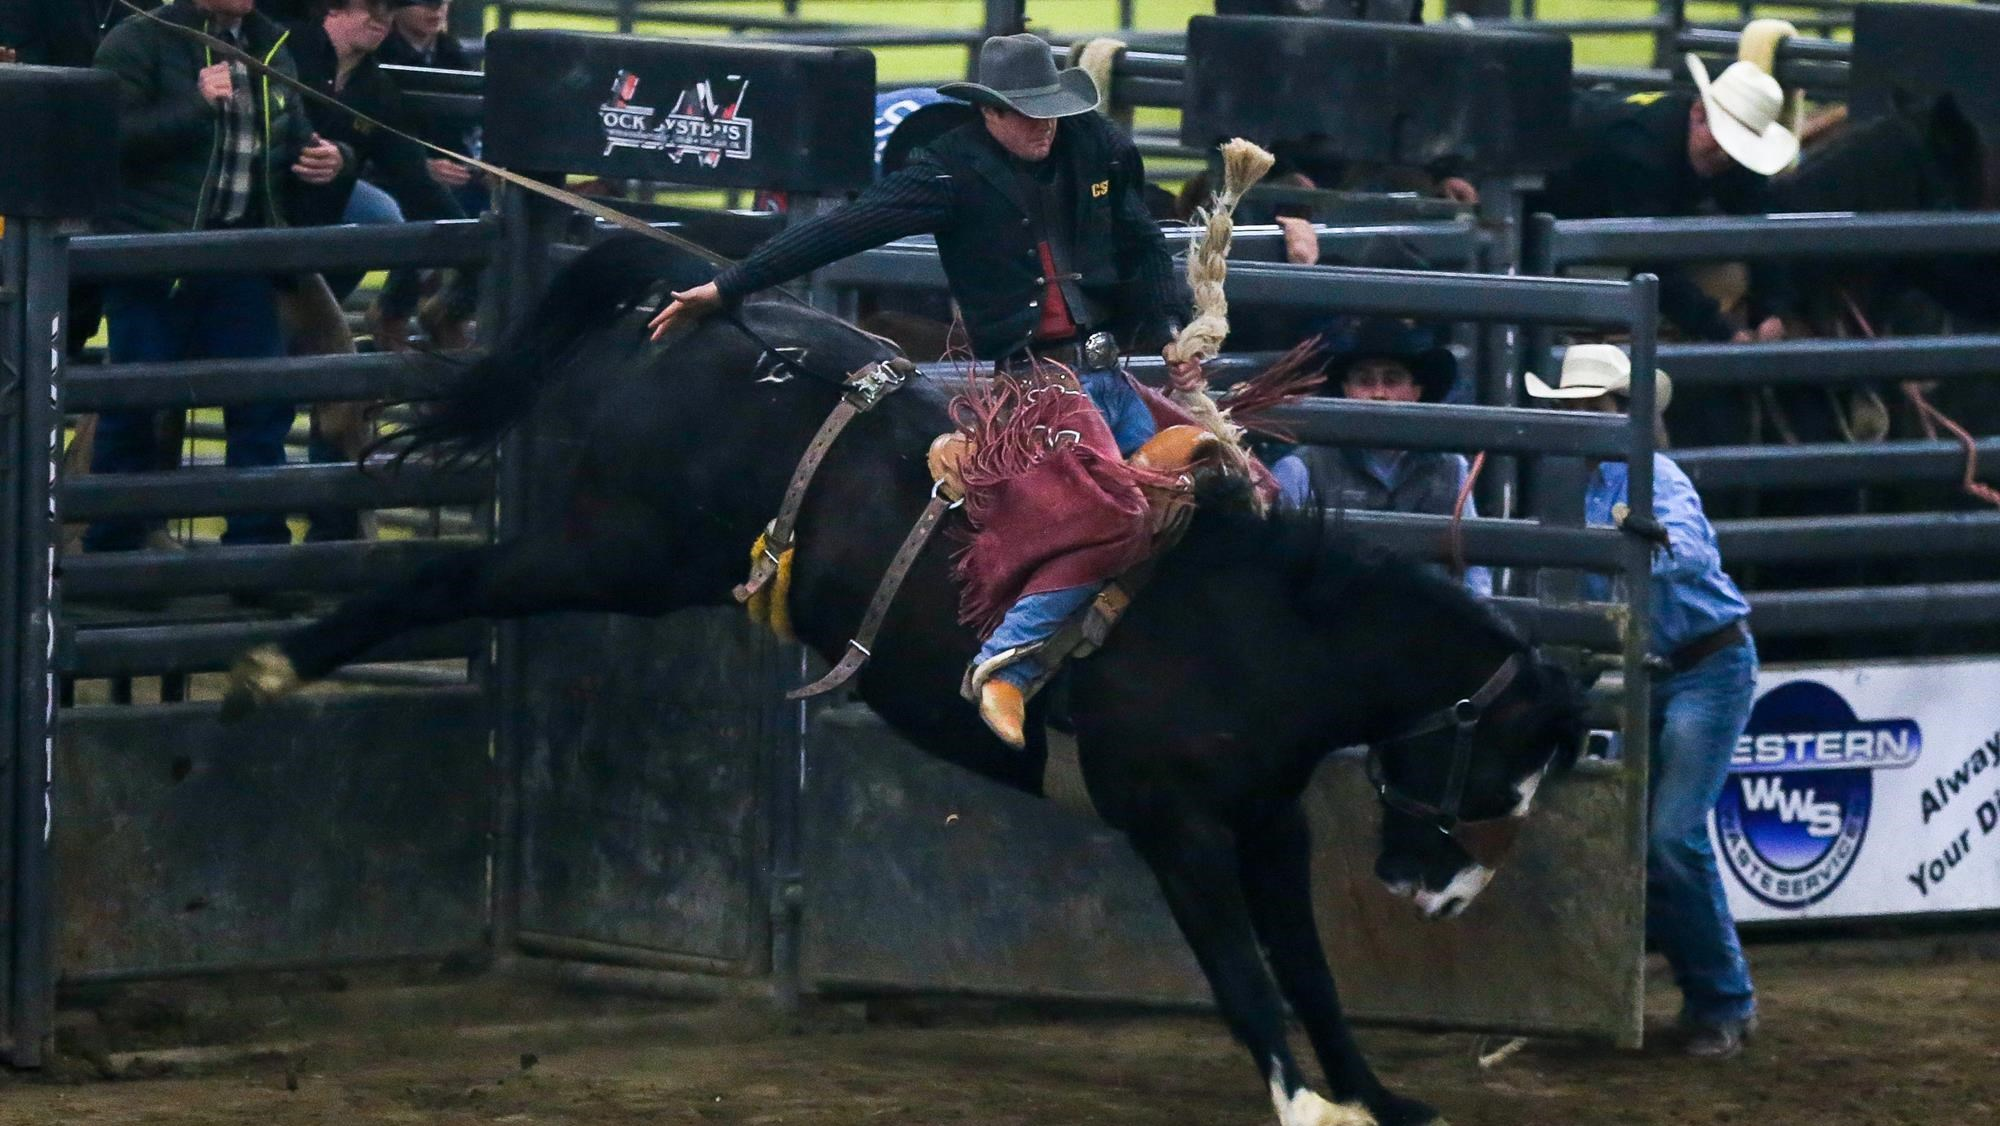 Csi Rodeo Dominates In Opening Rodeo College Of Southern